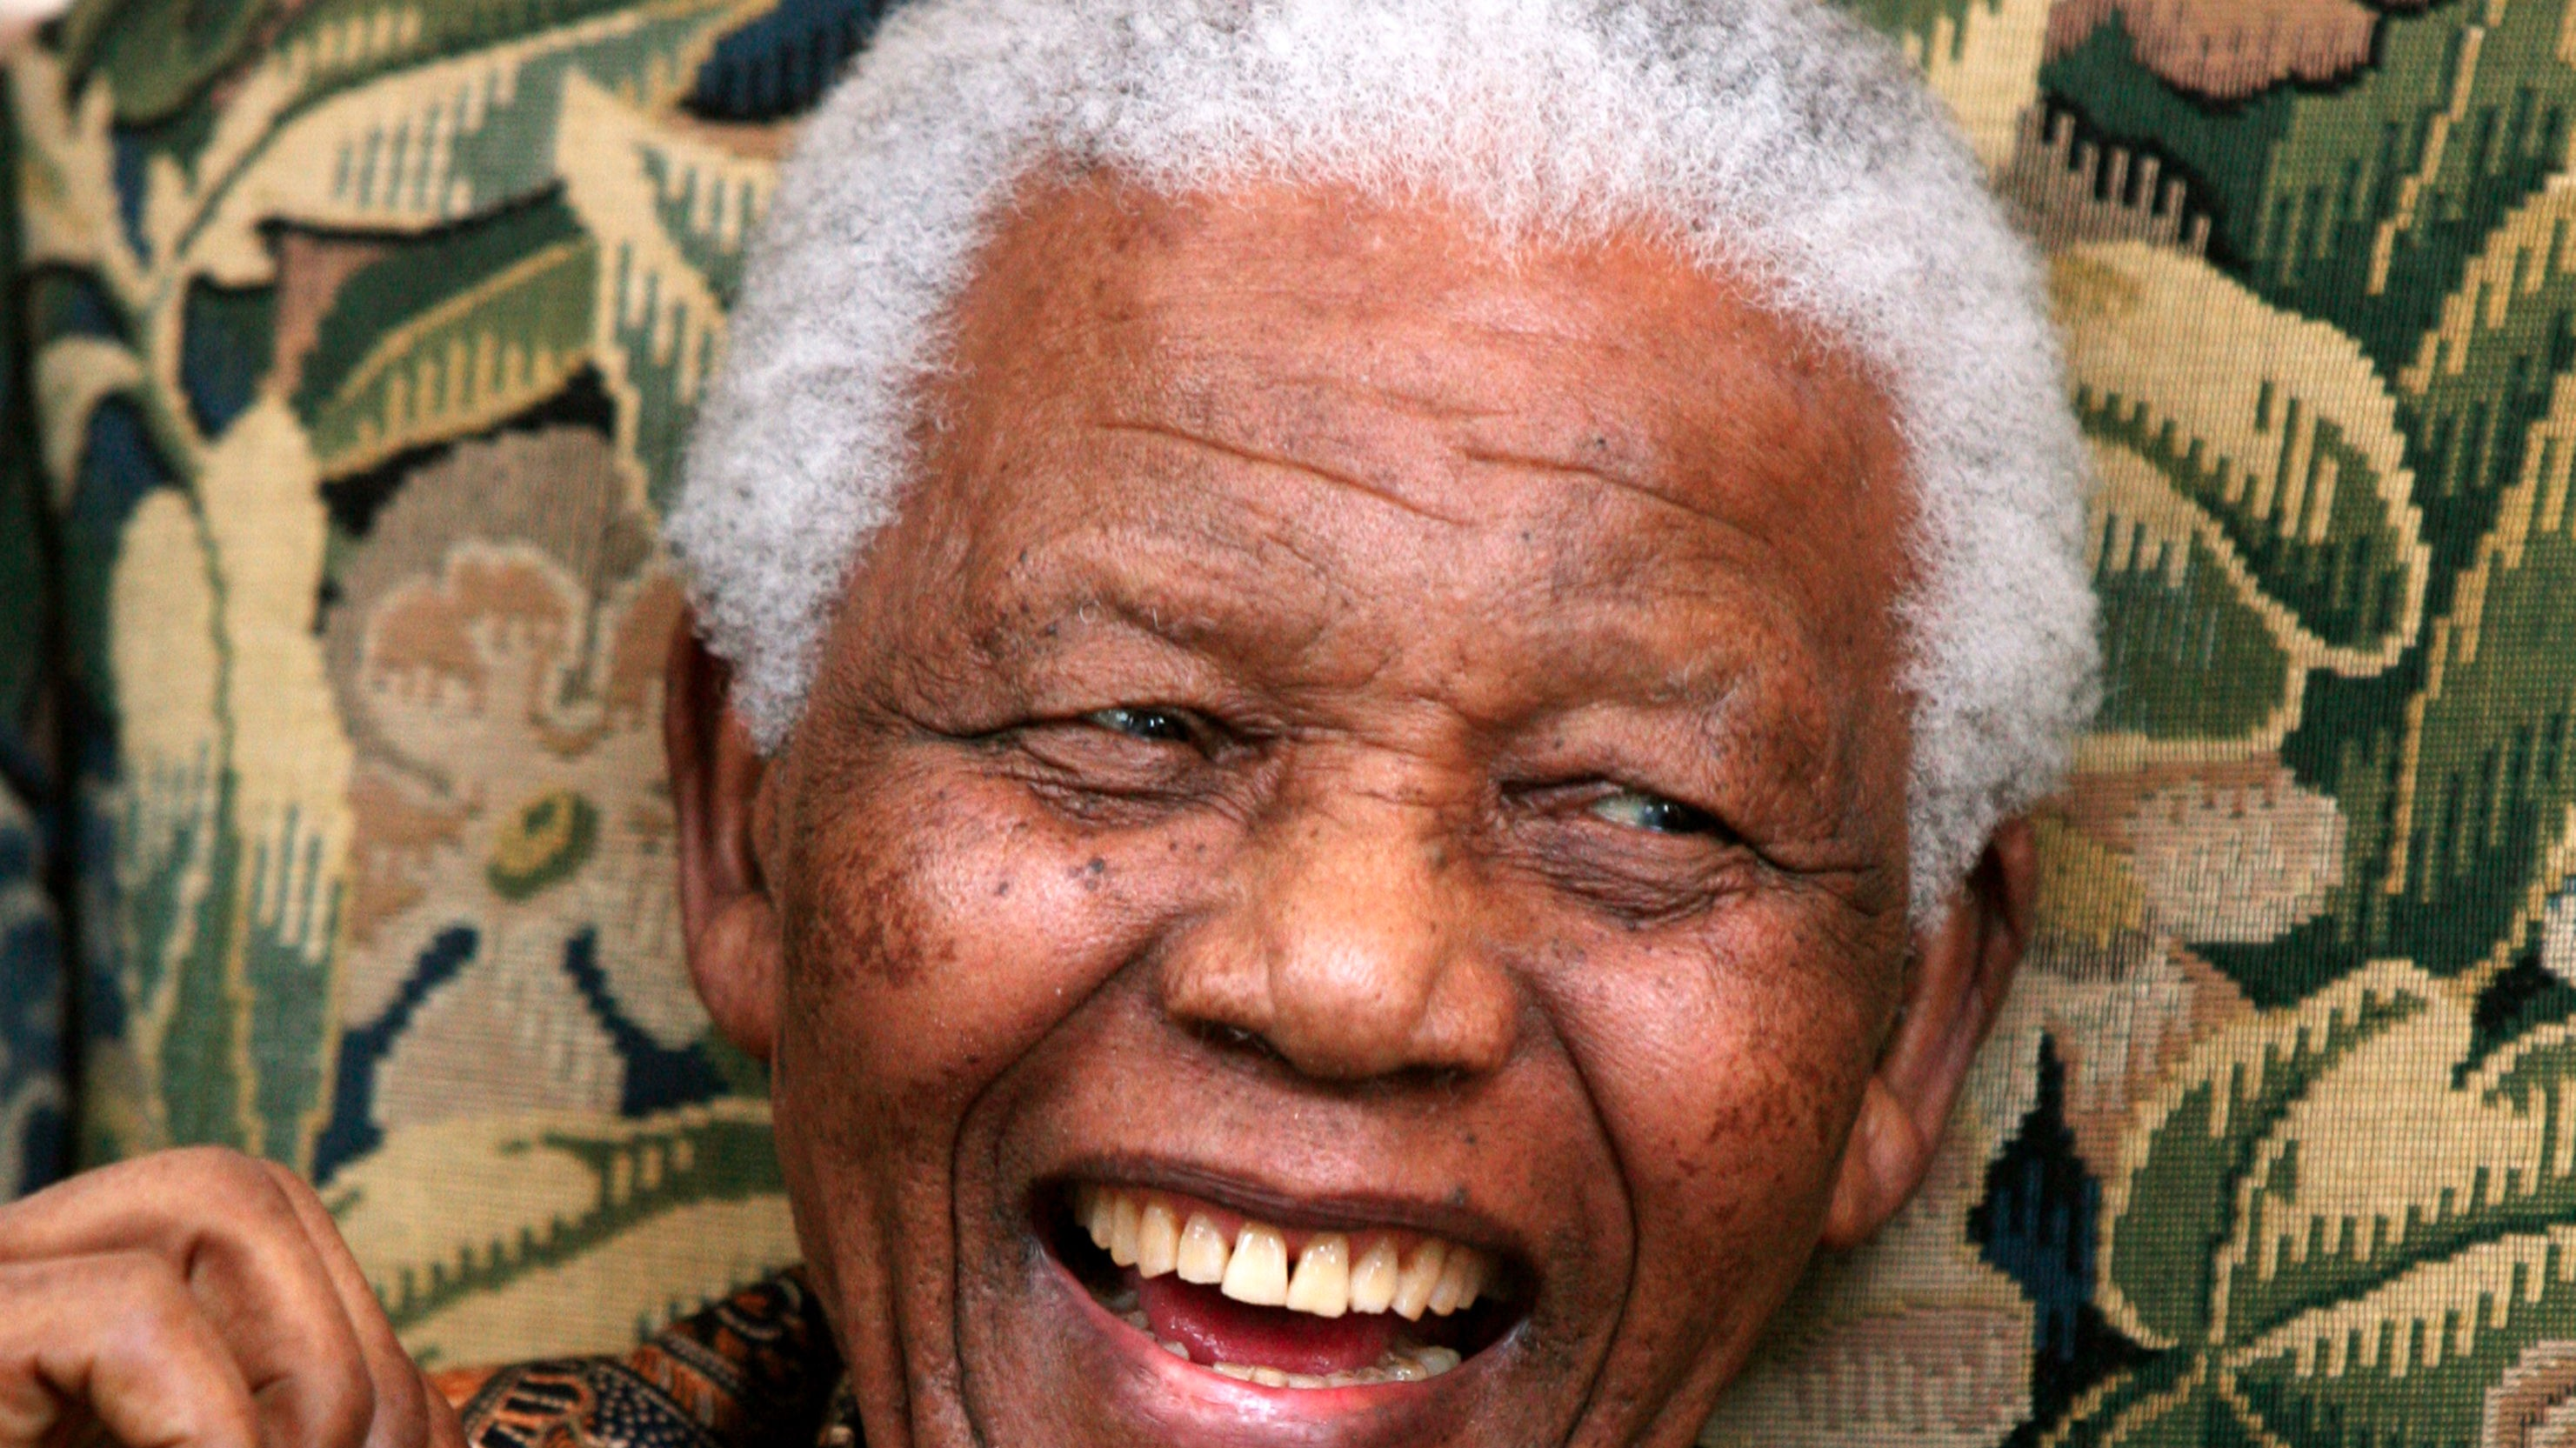 Pictures of the late nelson mandela BBC - History - Nelson Mandela released from prison